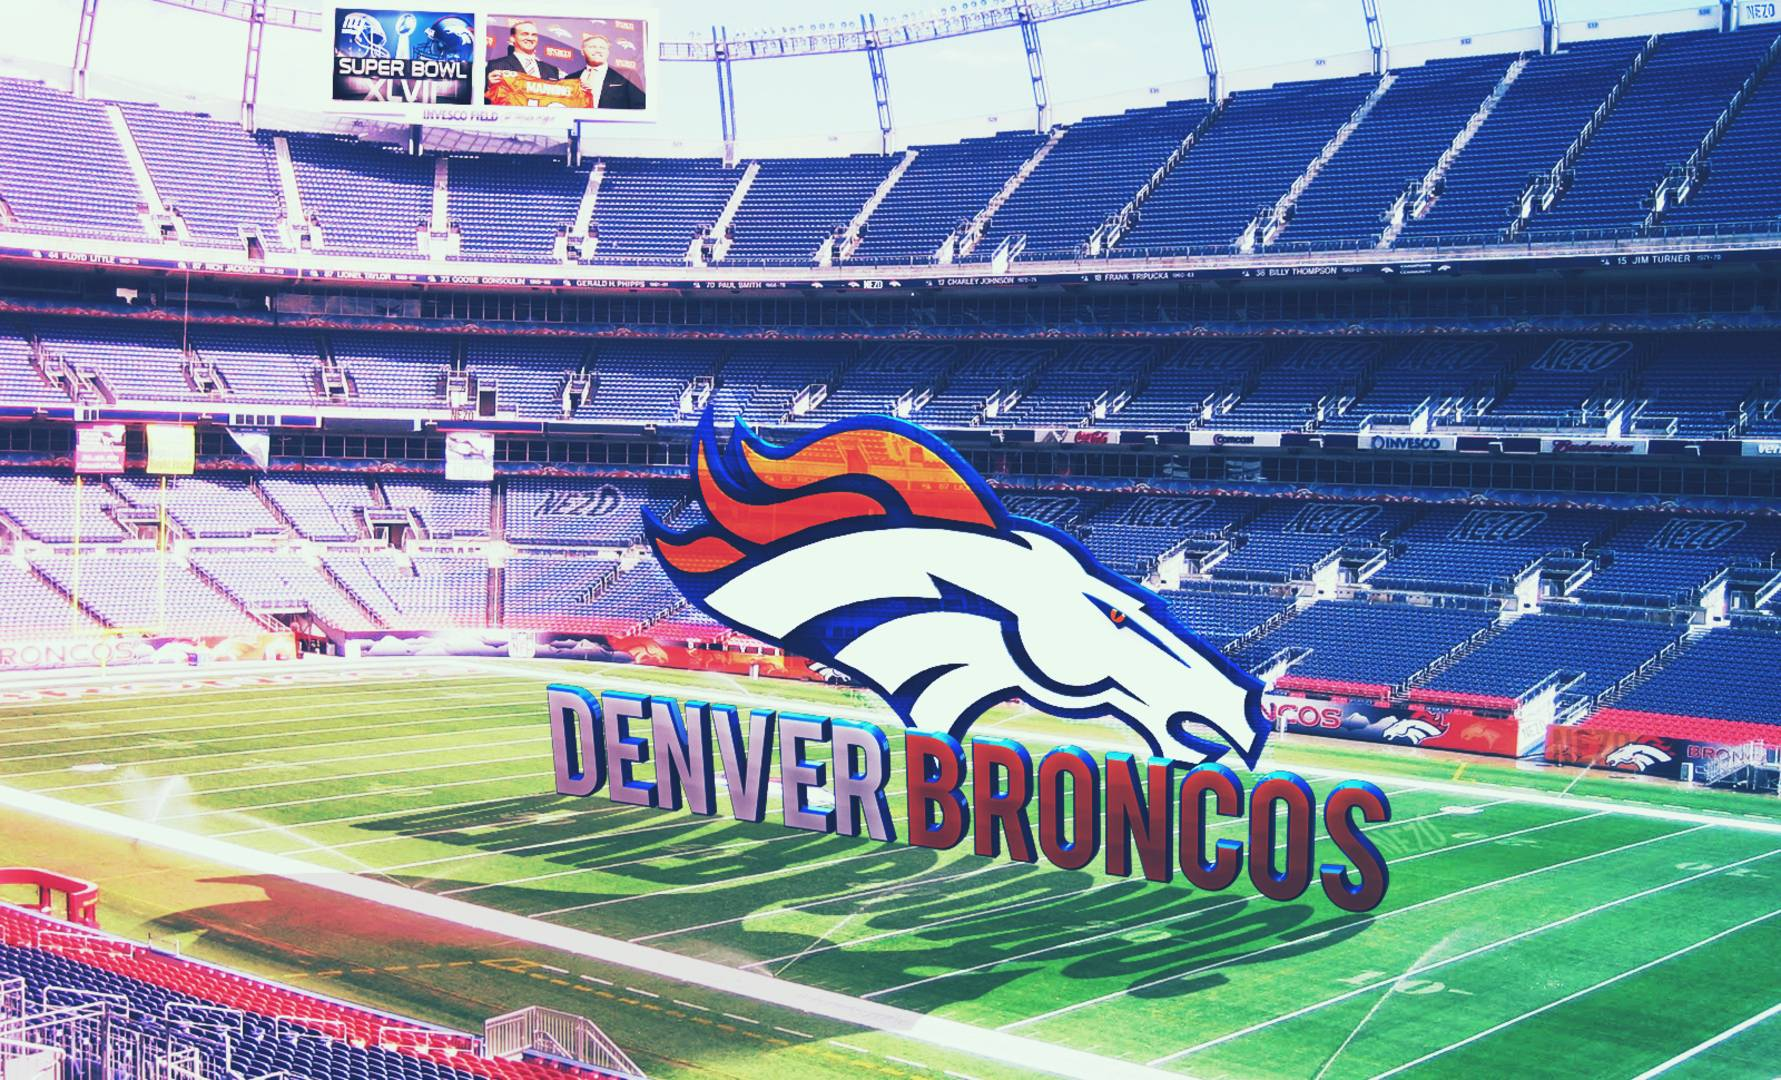 pictures of the denver broncos